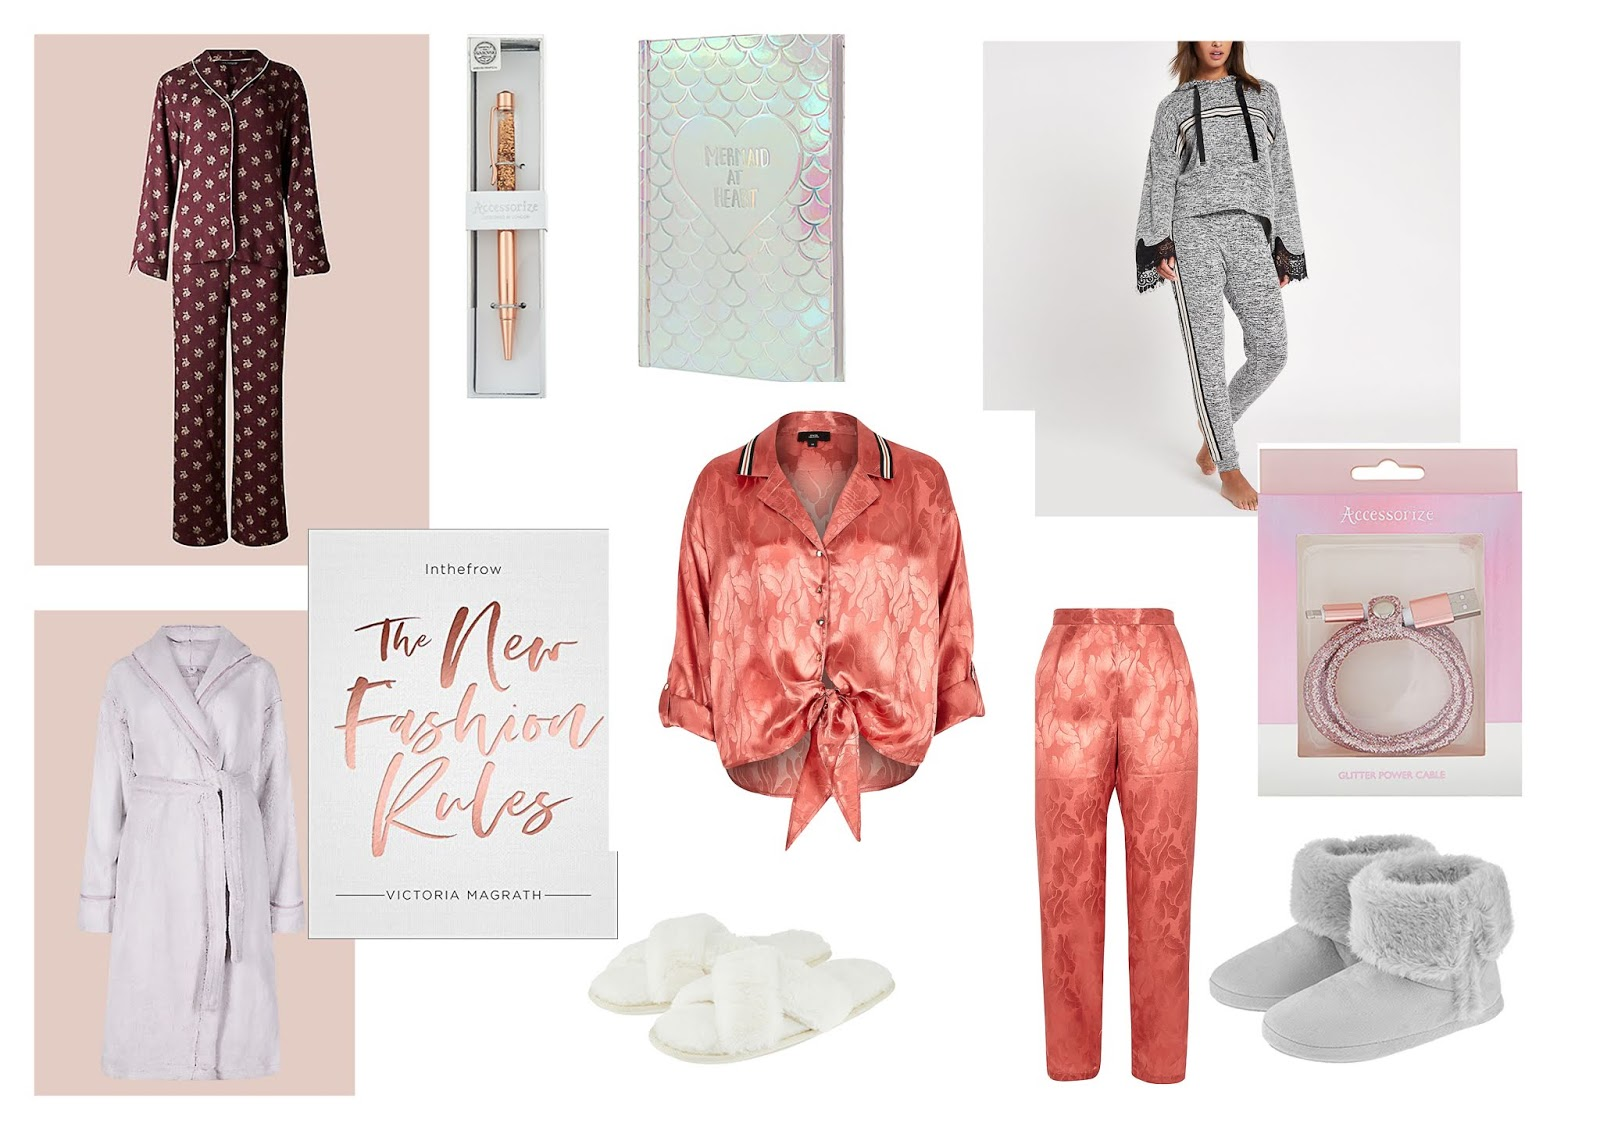 Christmas Gift Guide: Sleepwear, Stationery, Slippers, Books